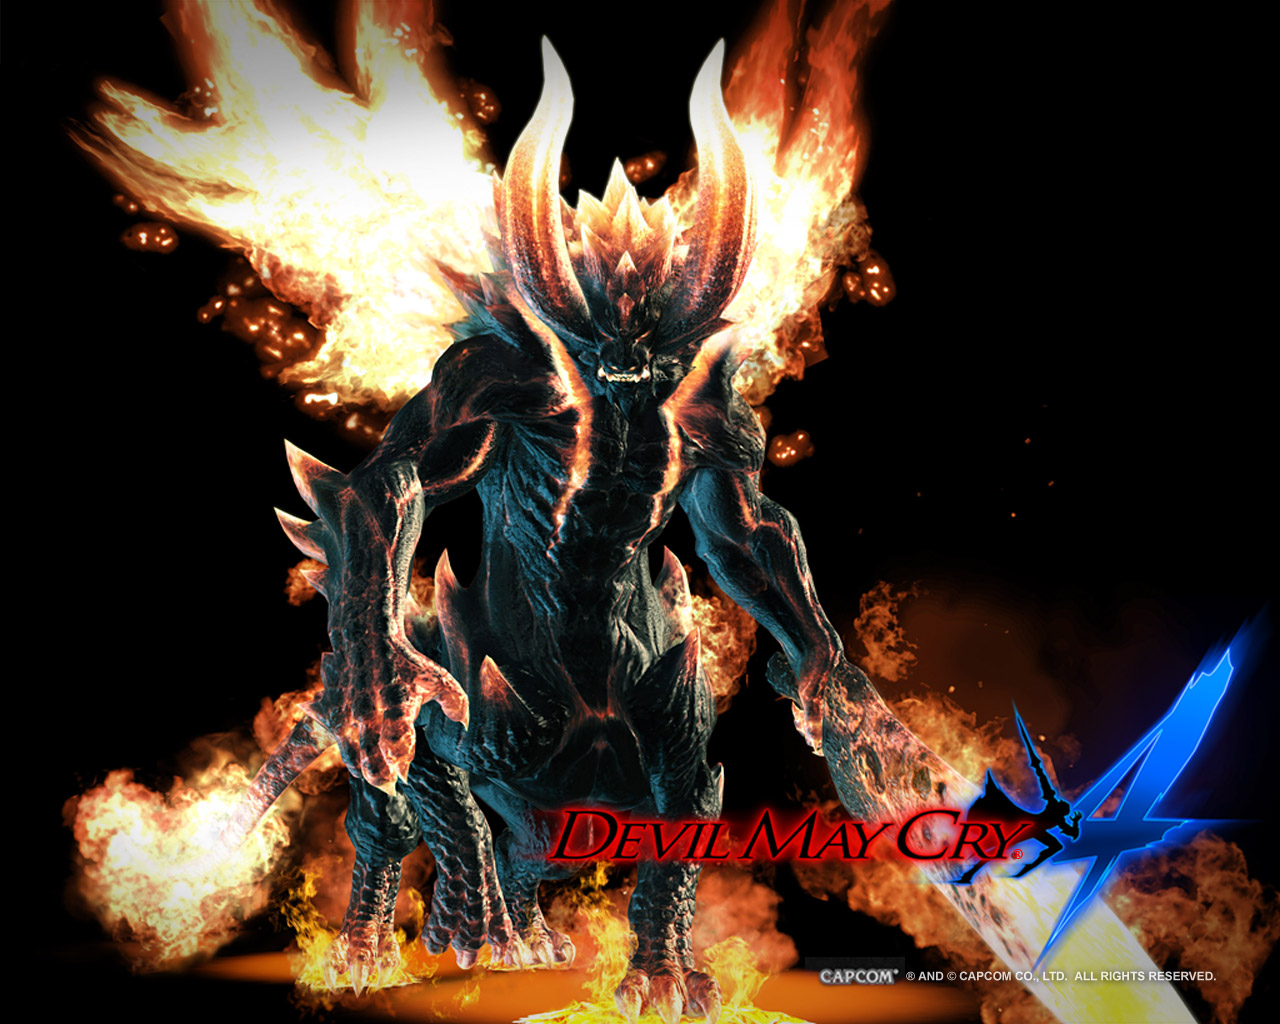 http://3.bp.blogspot.com/-UgFBQyp_JKs/Tca3kZvdl6I/AAAAAAAAAlc/3197ISfMi0w/s1600/devil-may-cry-4-wallpaper-demon.jpg